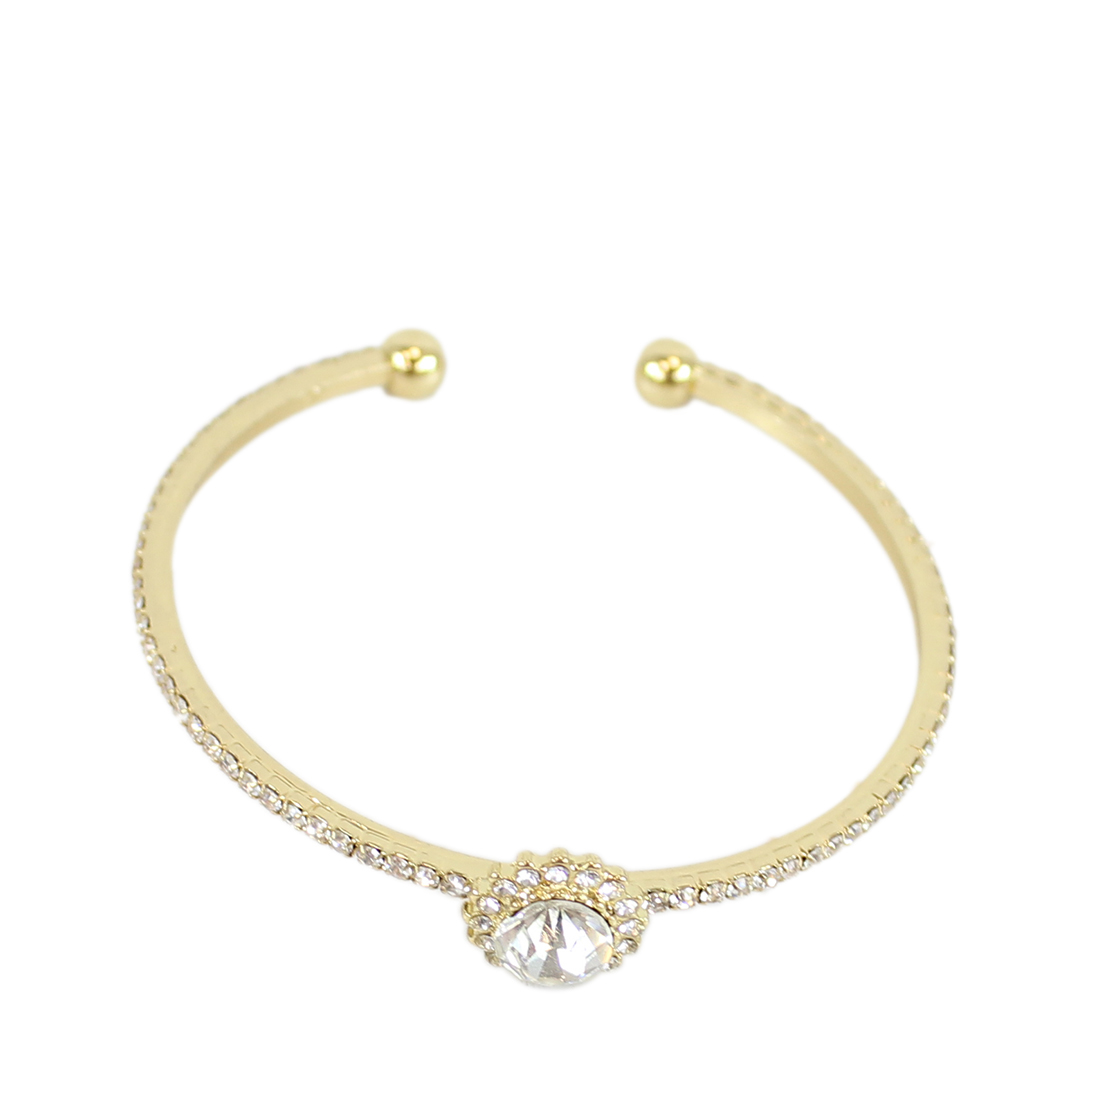 Bangle bracelet with diamonds cover